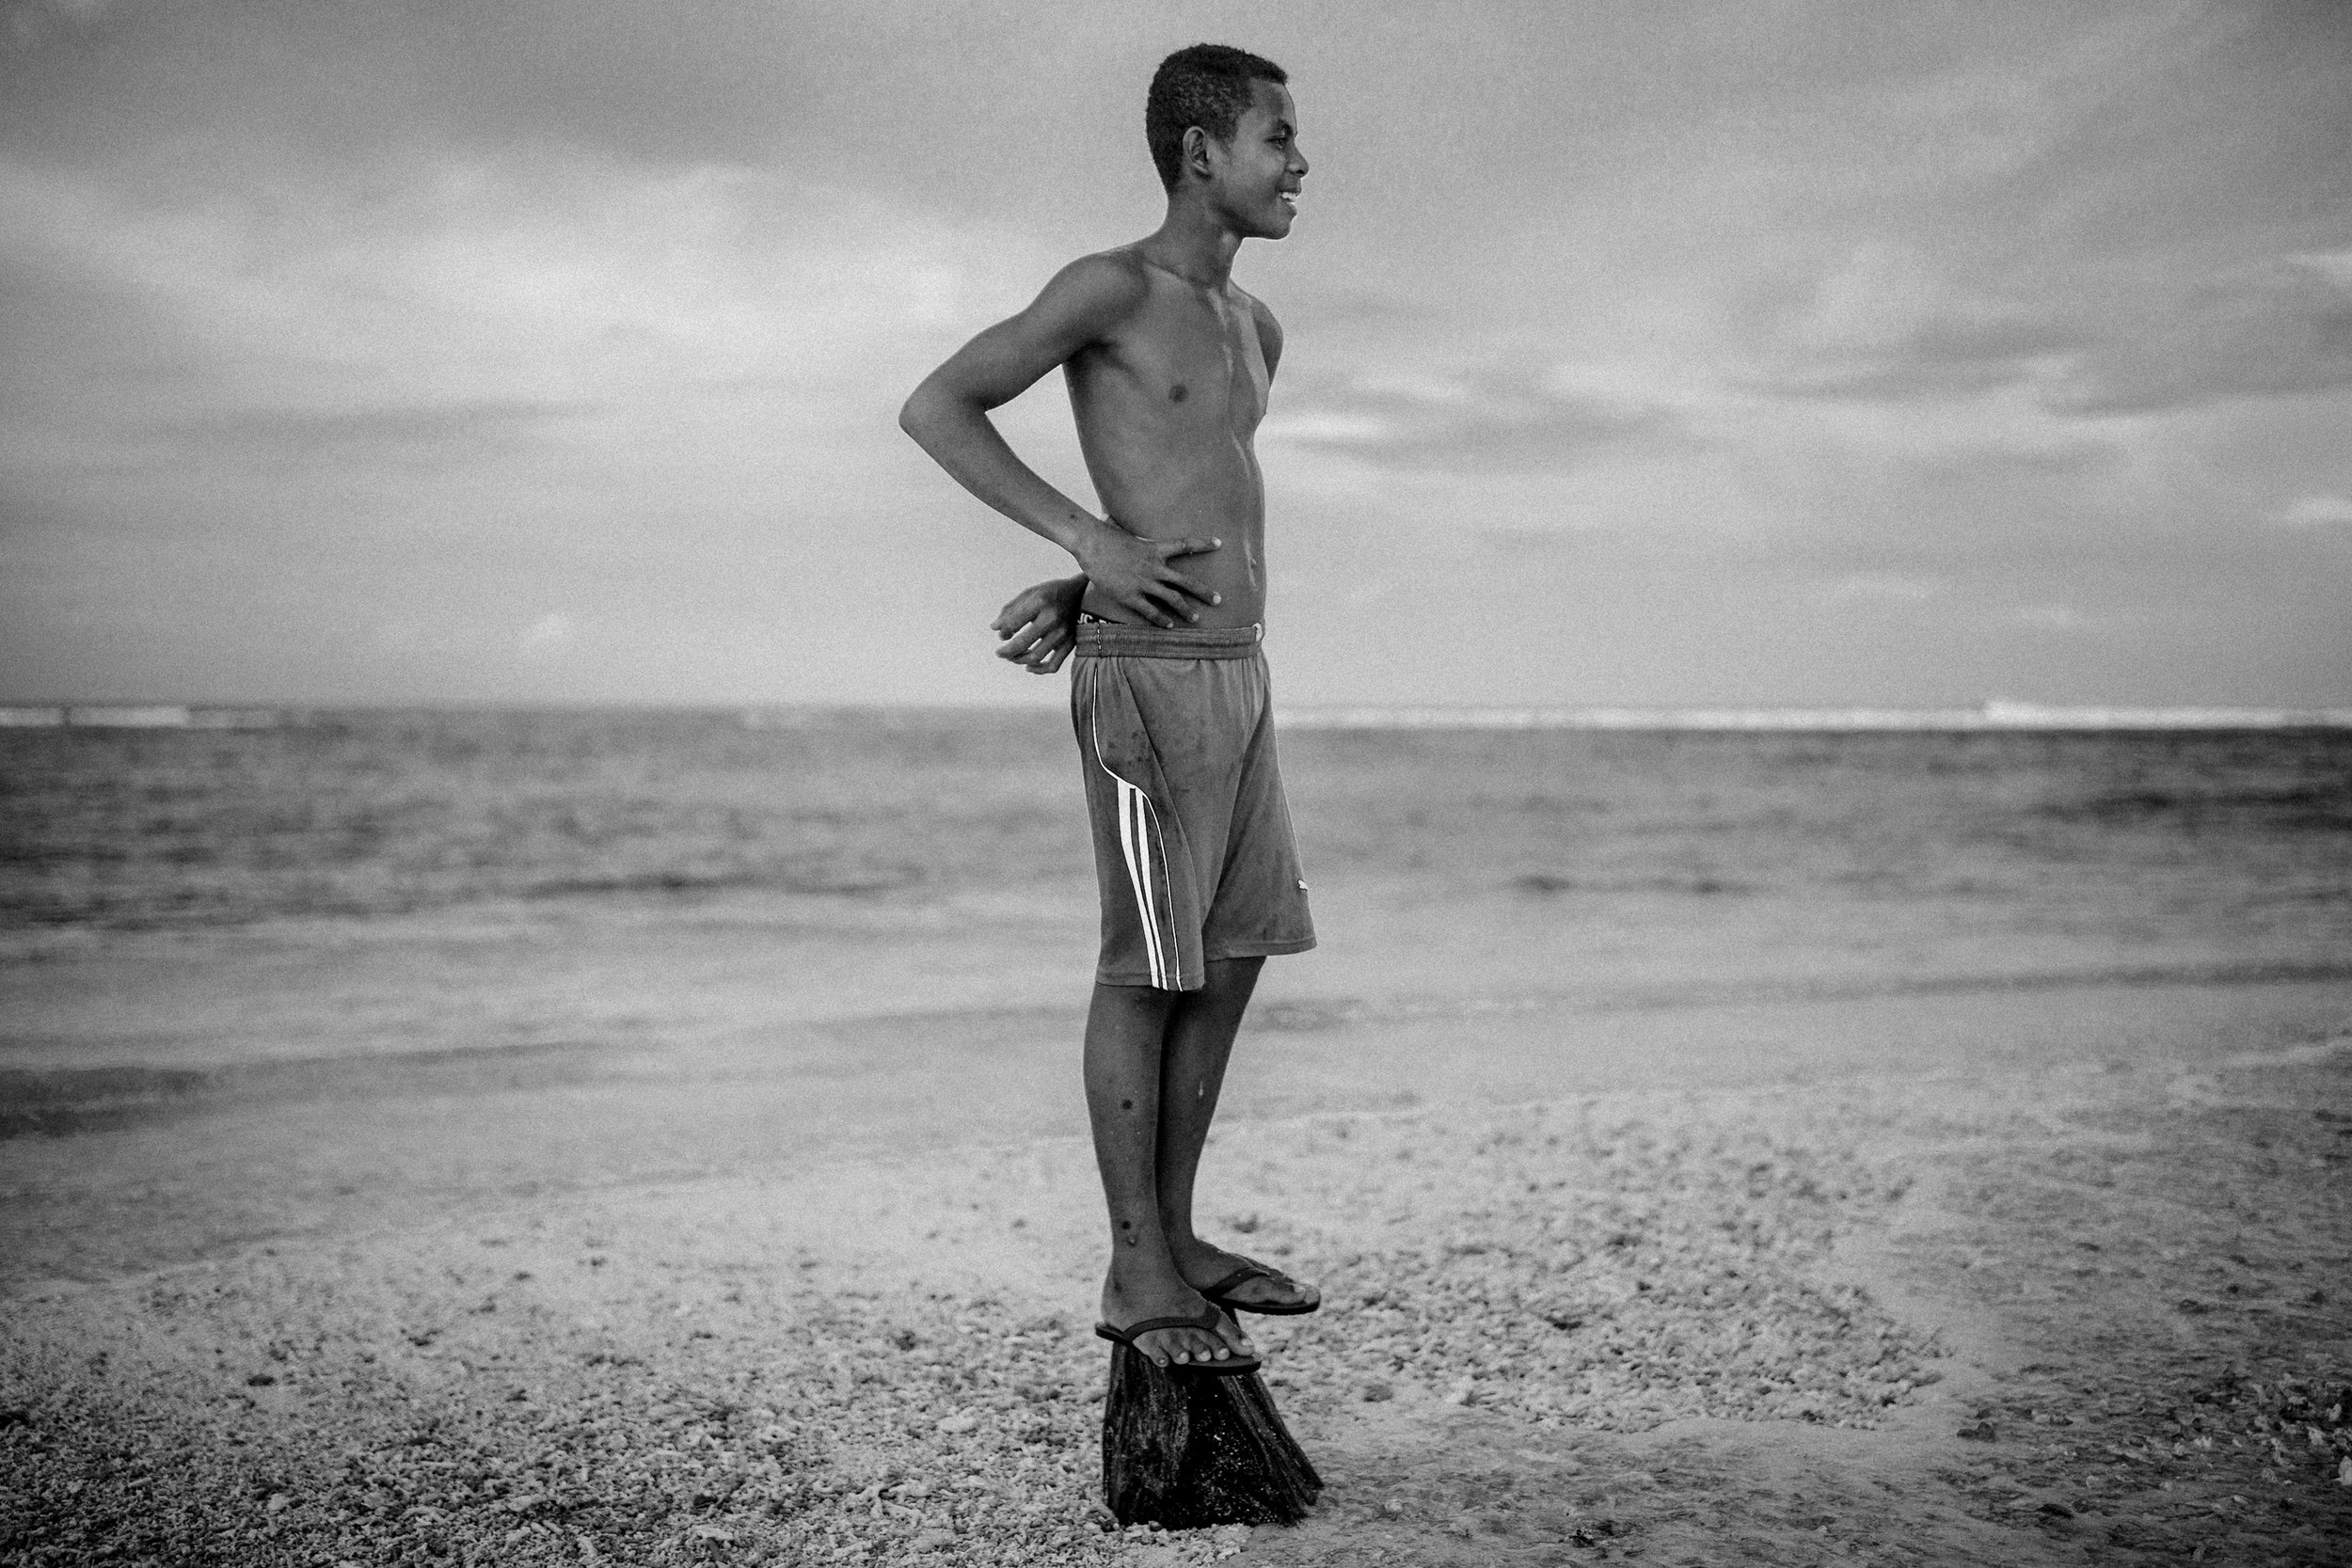 Inhabitant of climate affected island, Pacific ocean / Papua New Guinea